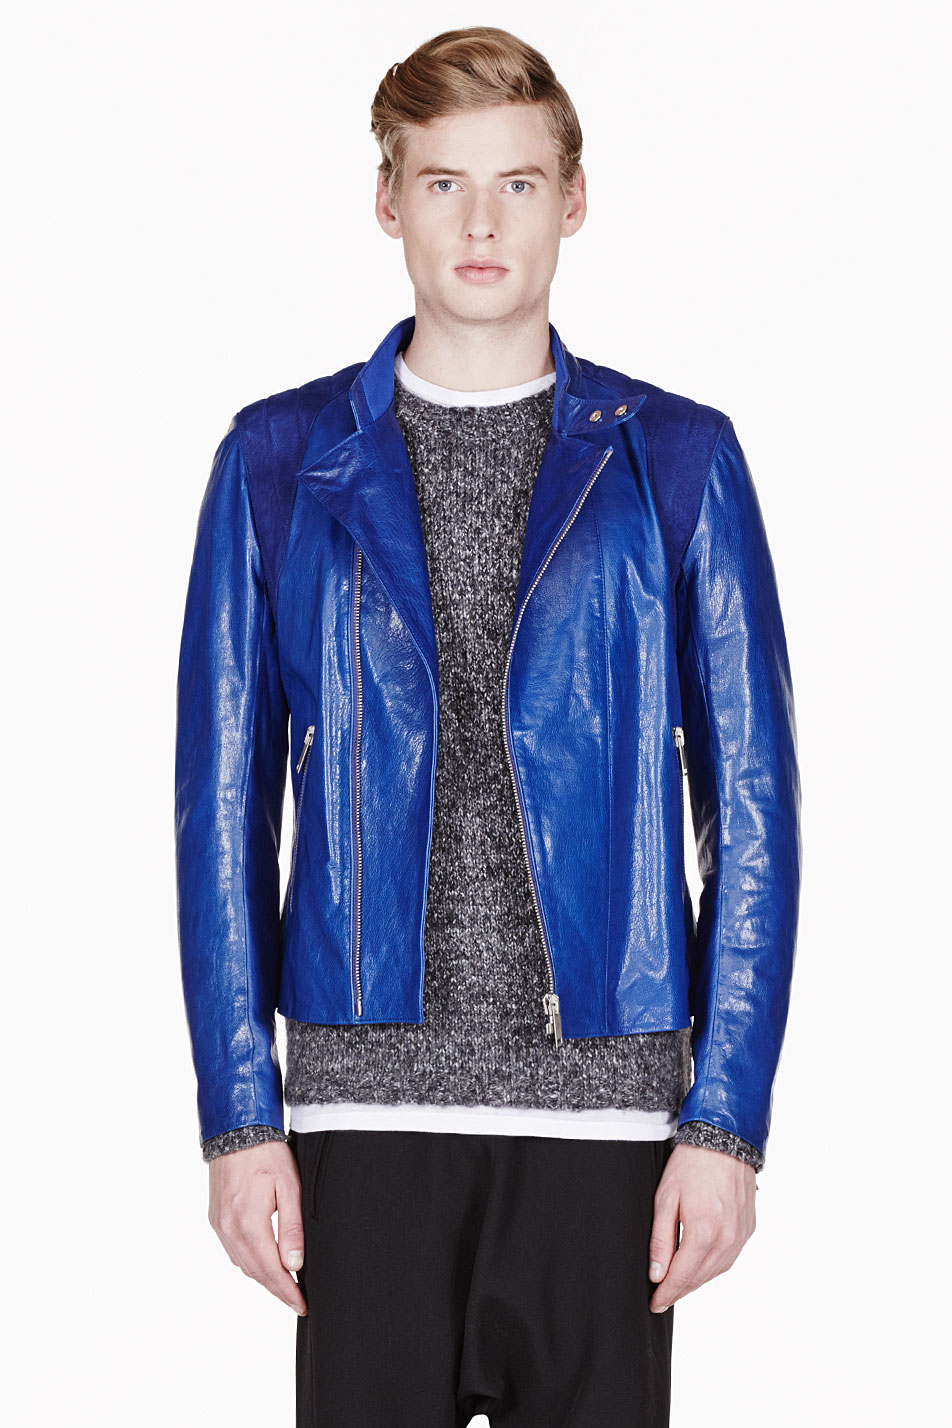 Alexander mcqueen Royal Blue Leather and Suede Biker ...